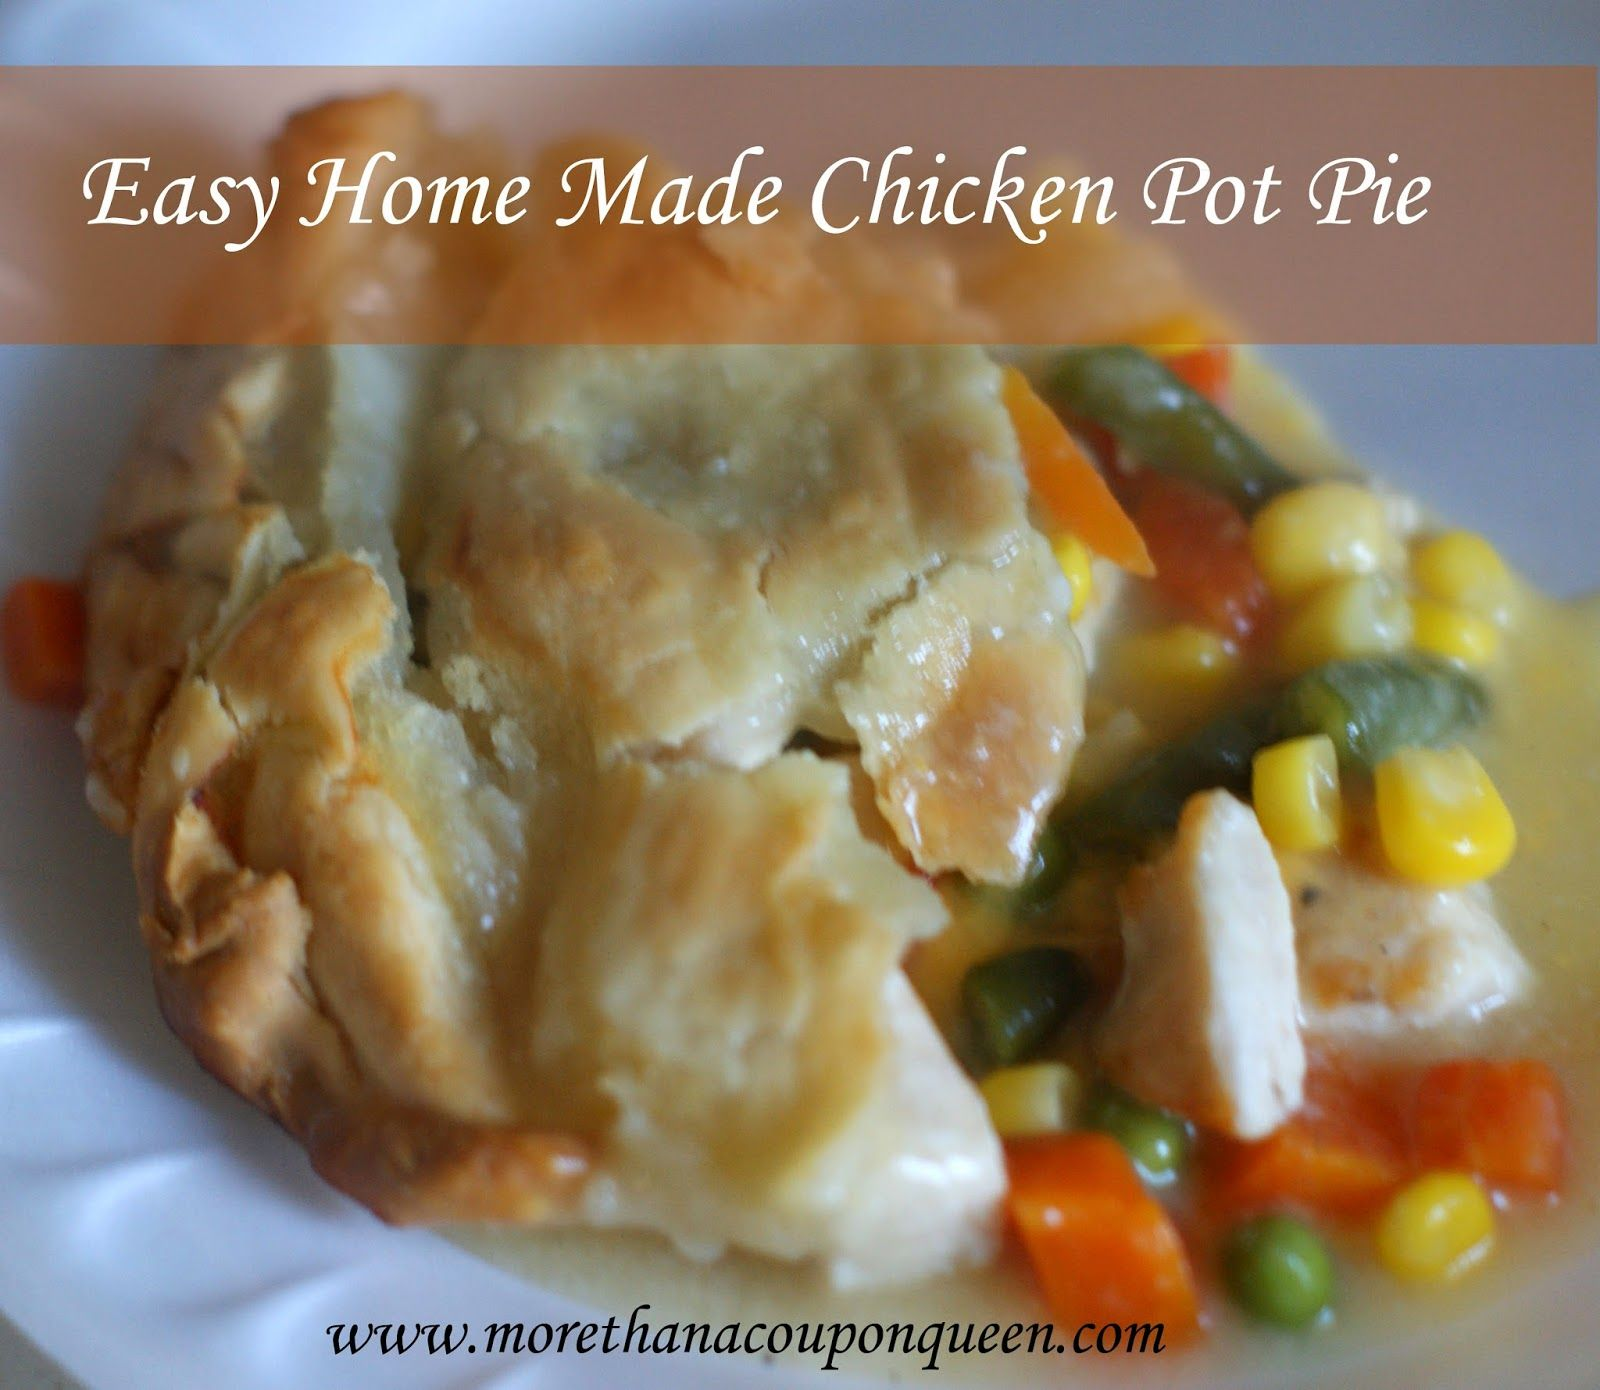 Easy home made chicken pot pie good food shouldnt have to break easy home made chicken pot pie good food shouldnt have to break the forumfinder Gallery